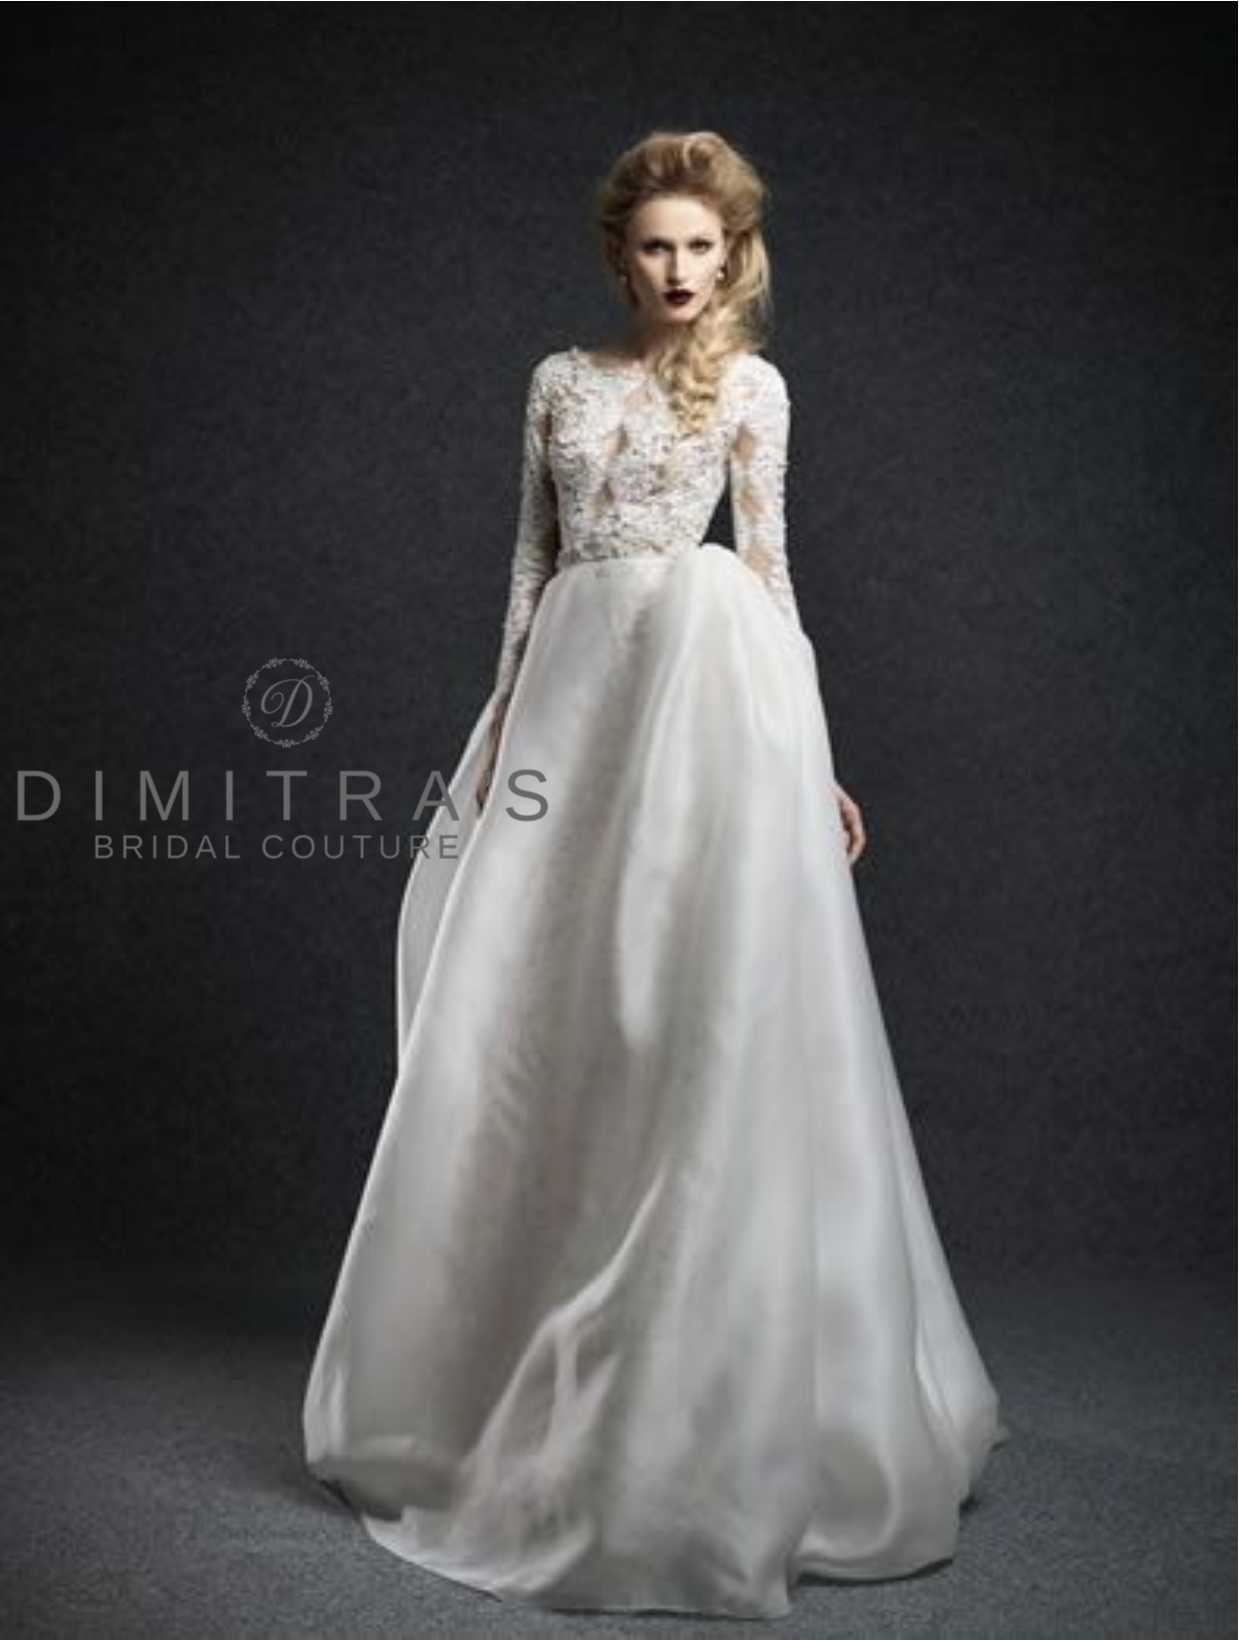 Ersa atelier available at dimitraus bridal couture ersaatelier